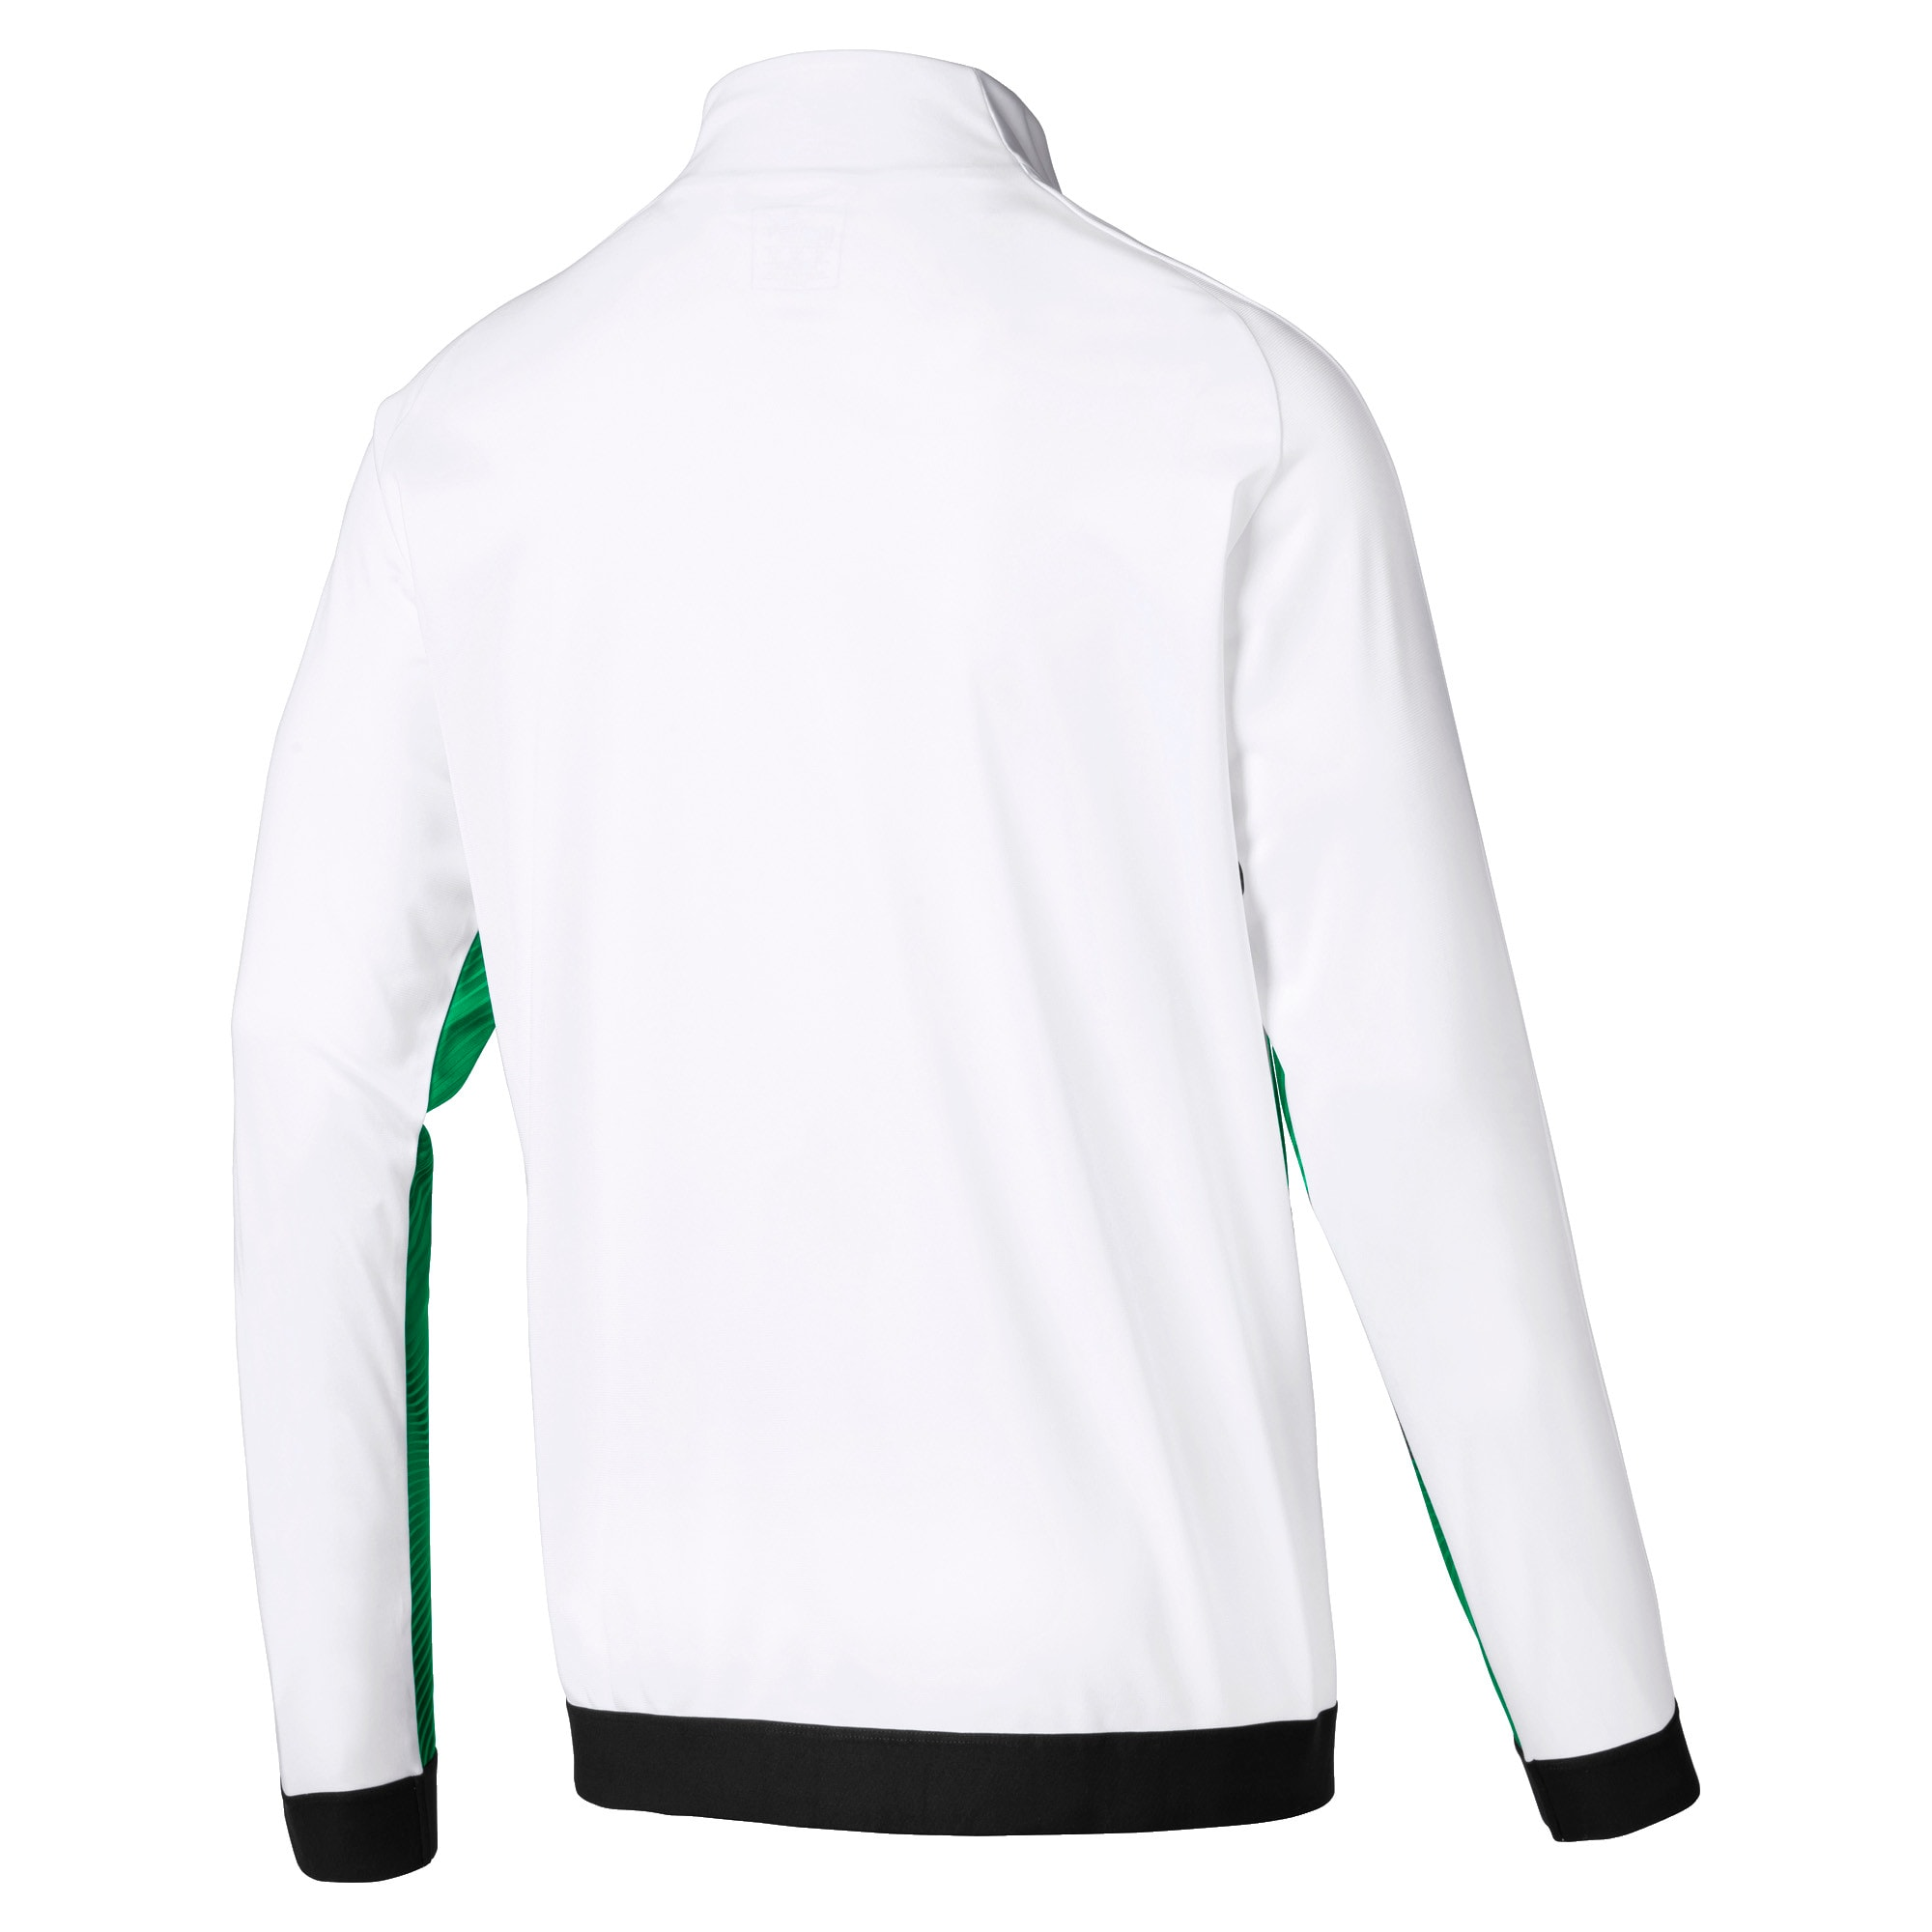 Thumbnail 2 of Borussia Mönchengladbach Men's Stadium Jacket, Bright Green-Puma Black, medium